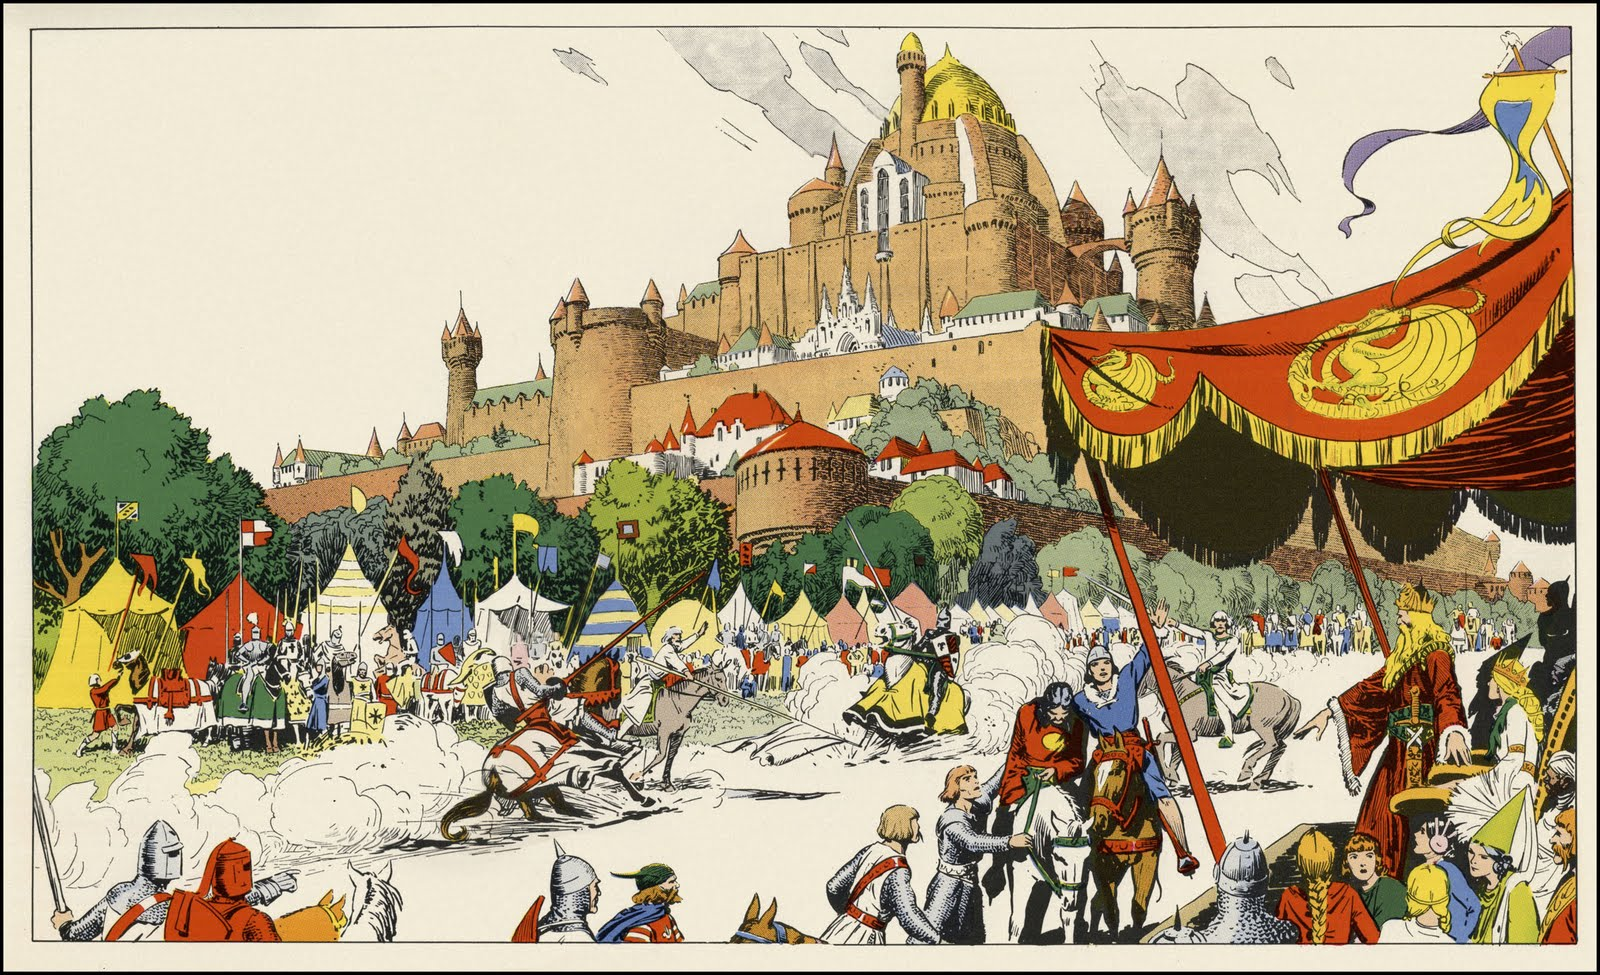 Camelot tournament scene from Prince Valiant by Hal Foster